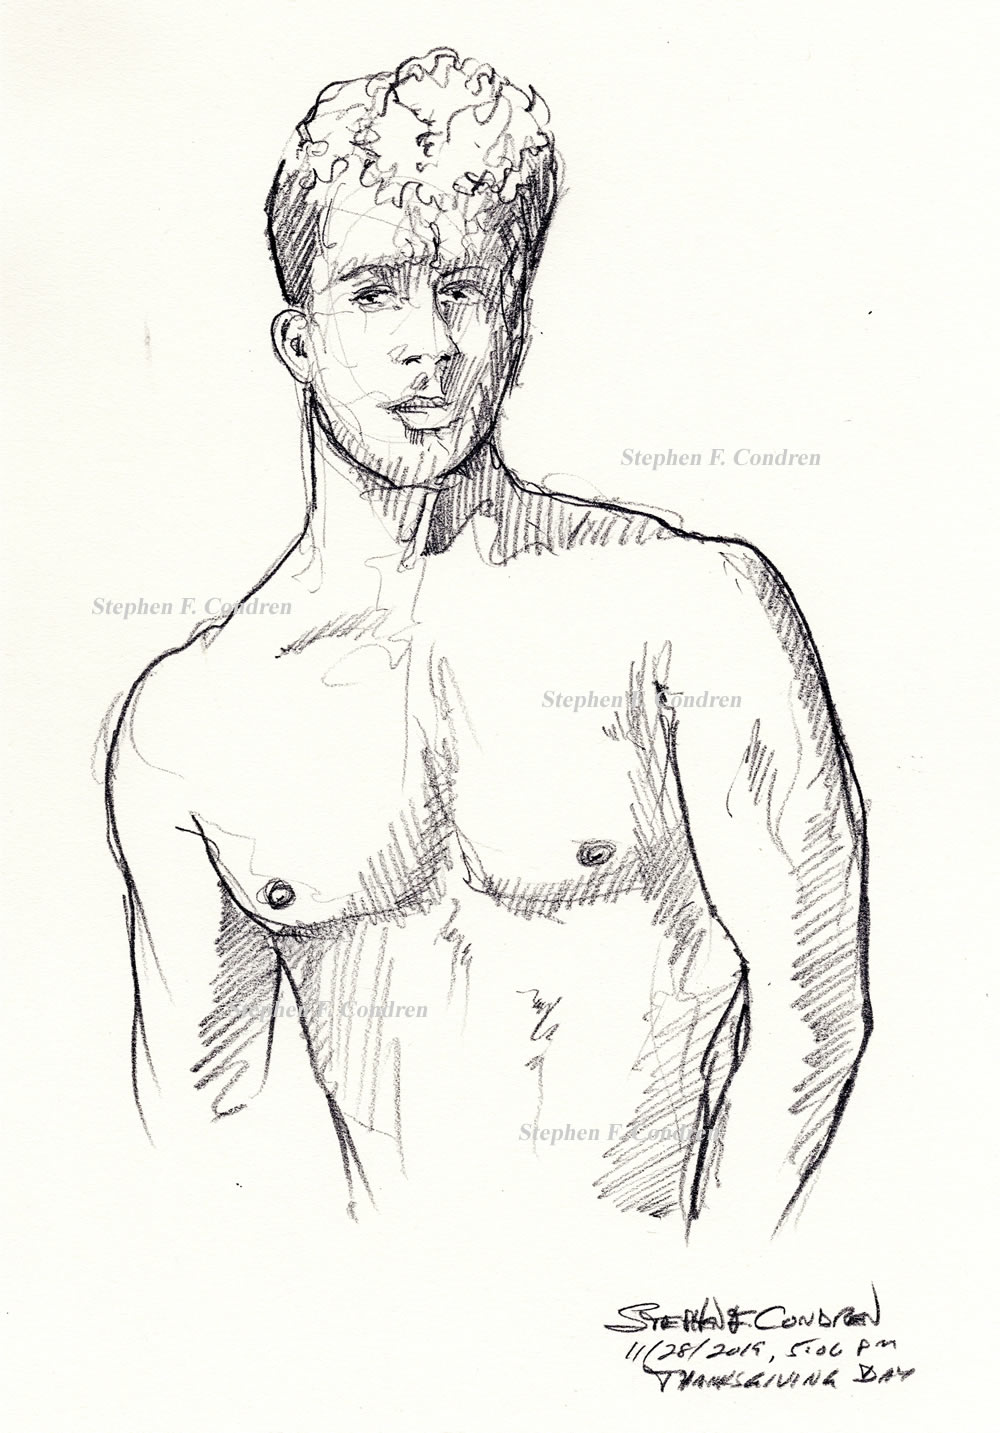 Dr. Andrew Neighbors #365Z shirtless figure drawing in pencil by artist Stephen F. Condren, with LGBTQ gay prints.